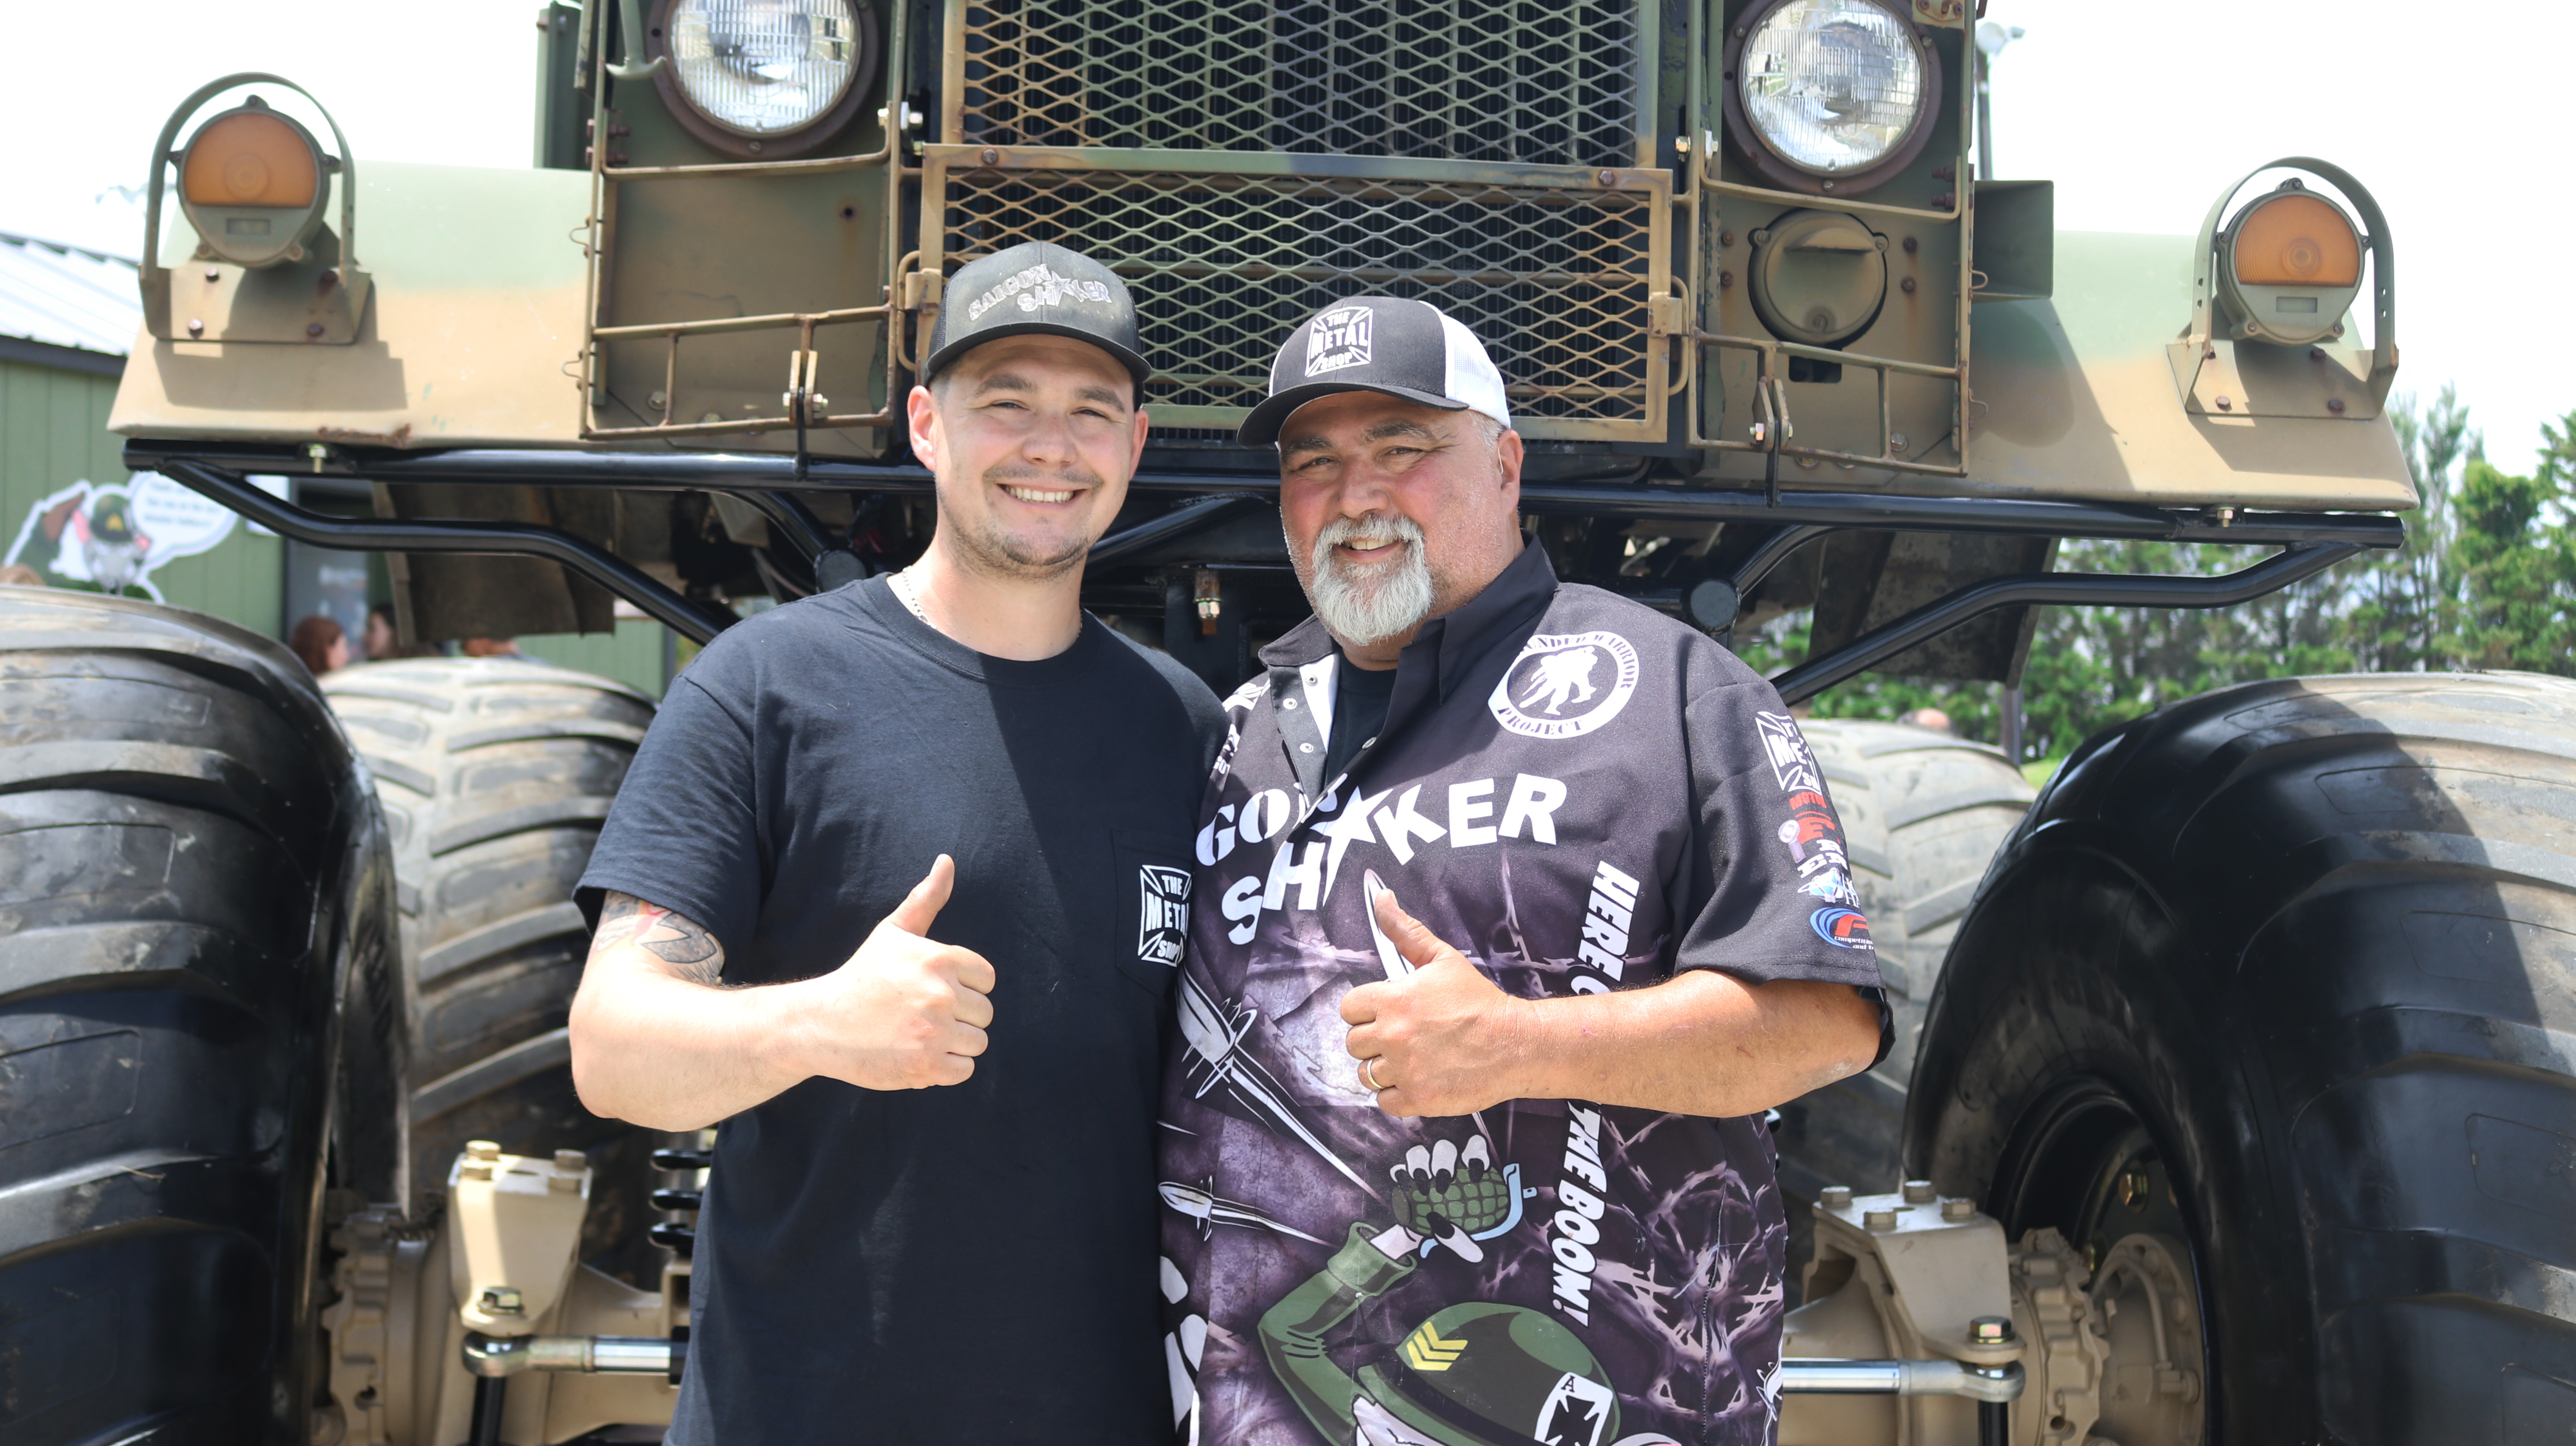 Father and Son pictured in front of the monster truck